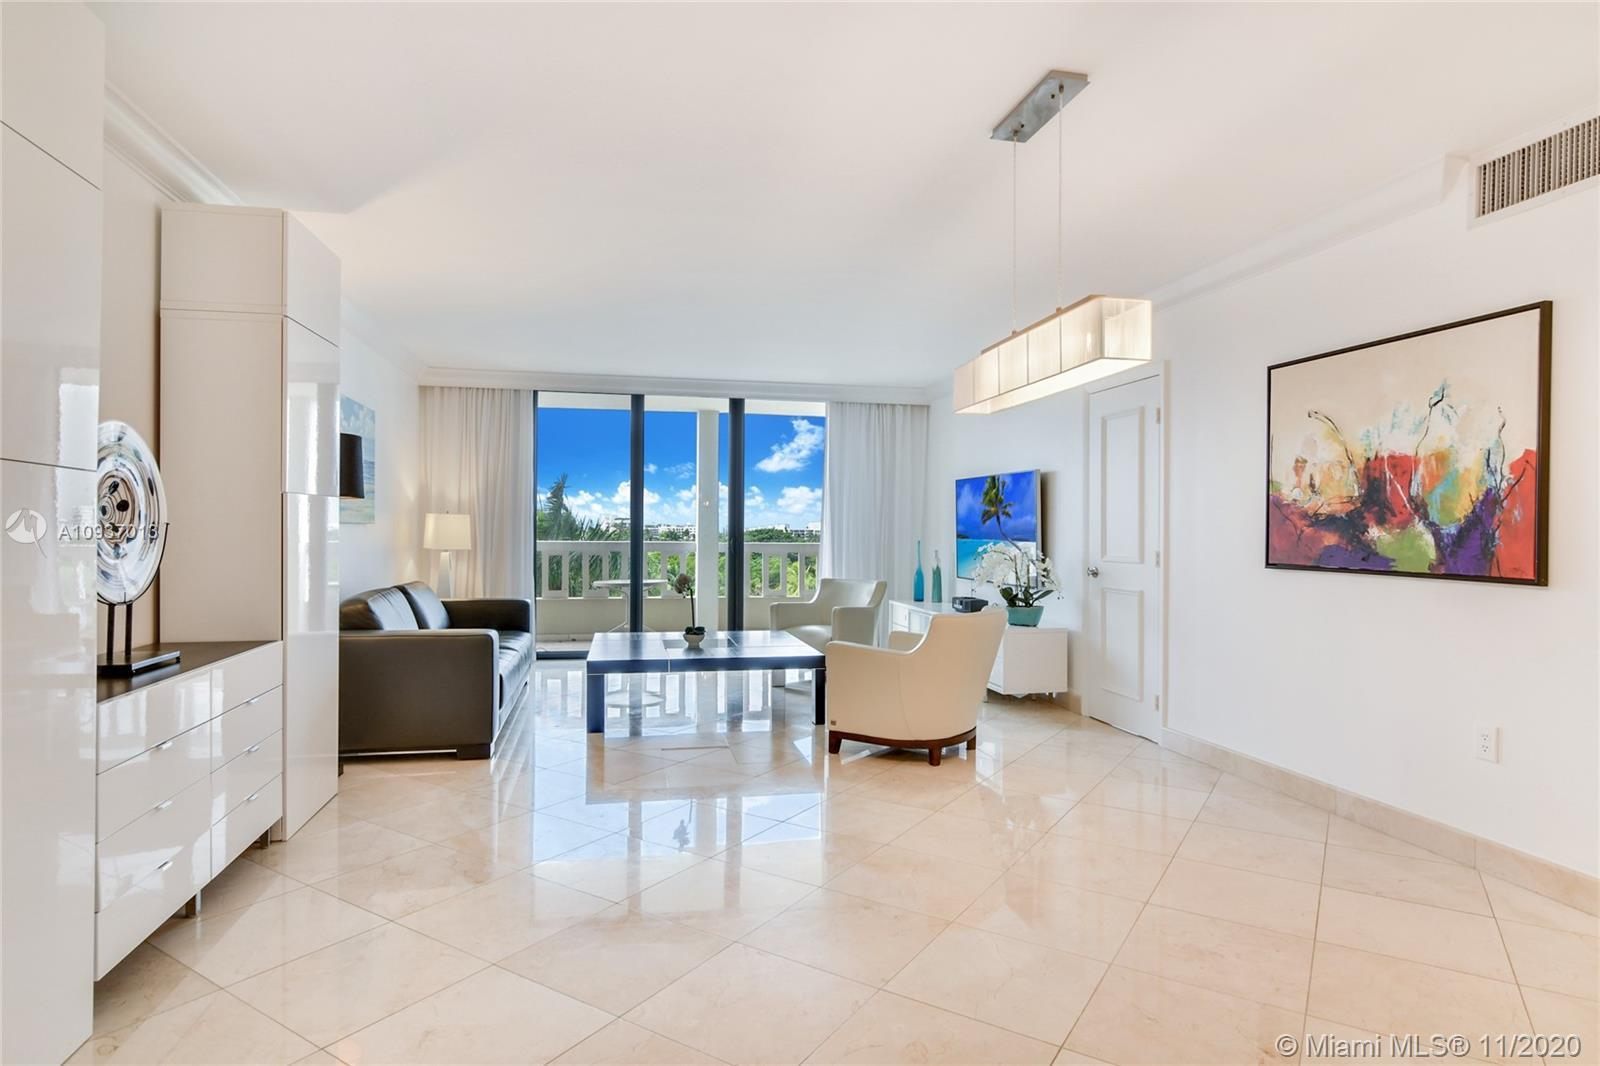 Balmoral Condo at Bal Harbour Florida, unit 7Q with 1,388 SqFt. Very illuminated, beautiful sunsets